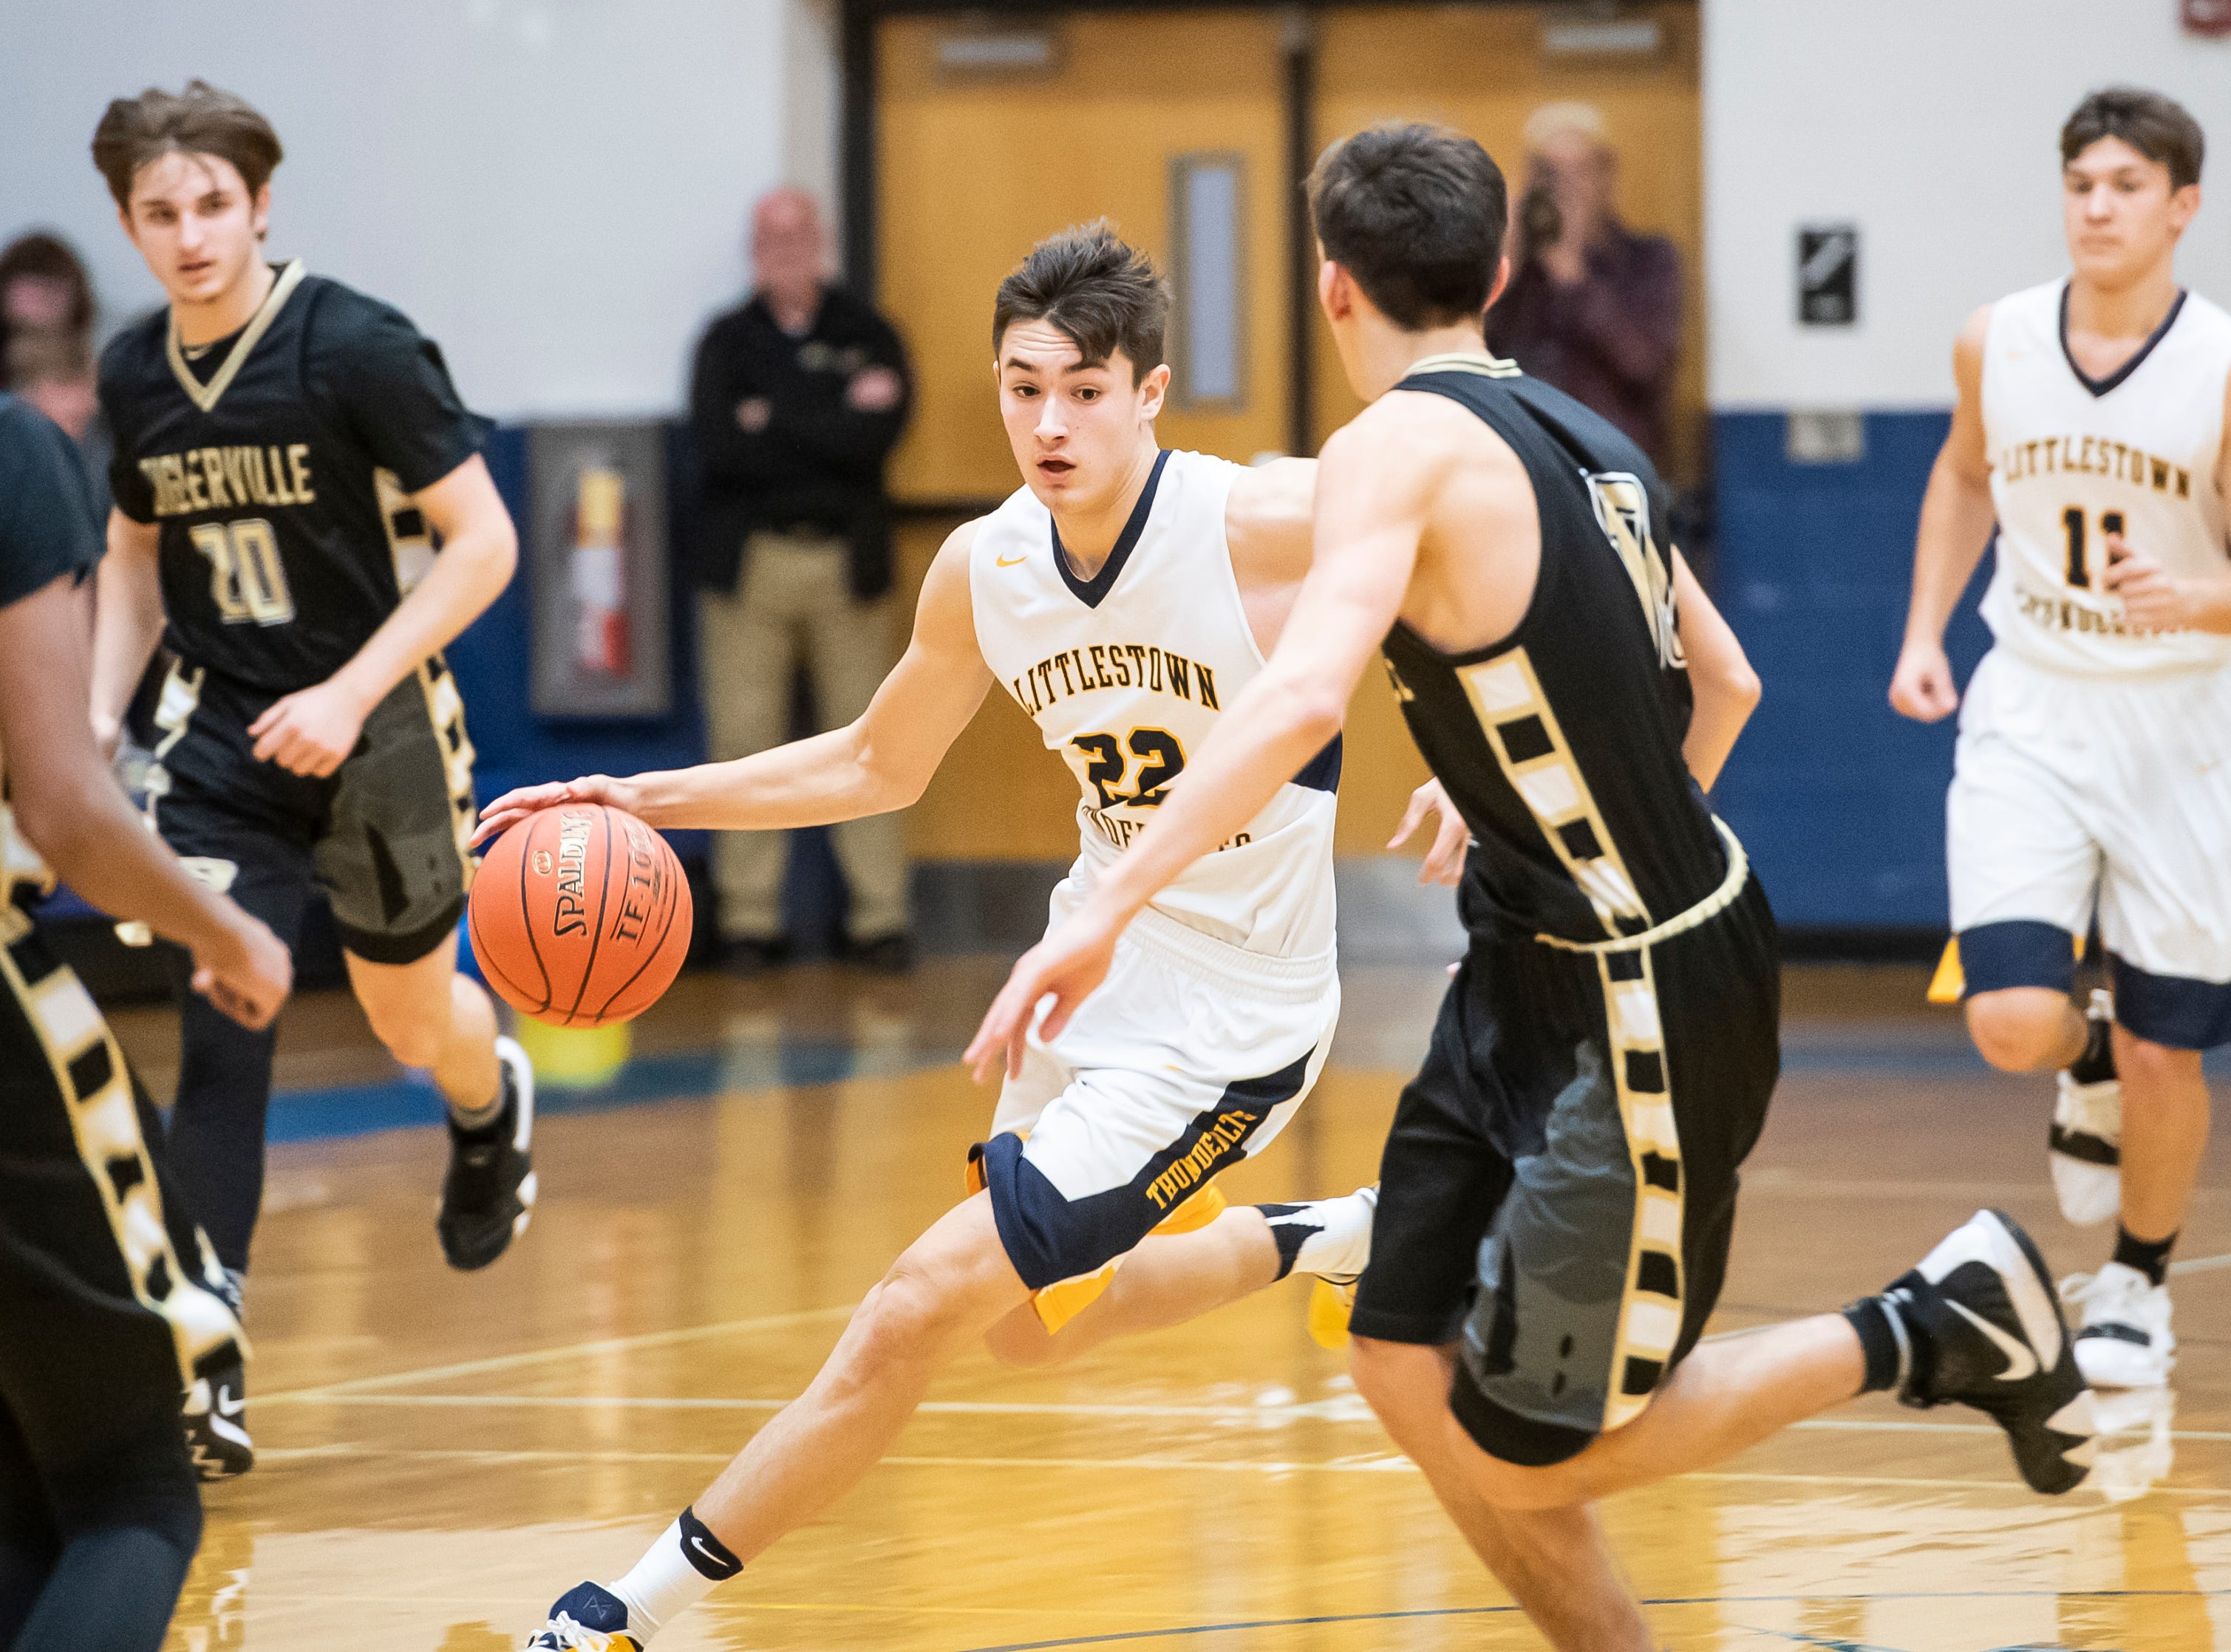 Littlestown's Logan Collins dribbles through traffic during play against Biglerville Tuesday, February 5, 2019. The Bolts won 54-46 on senior night.